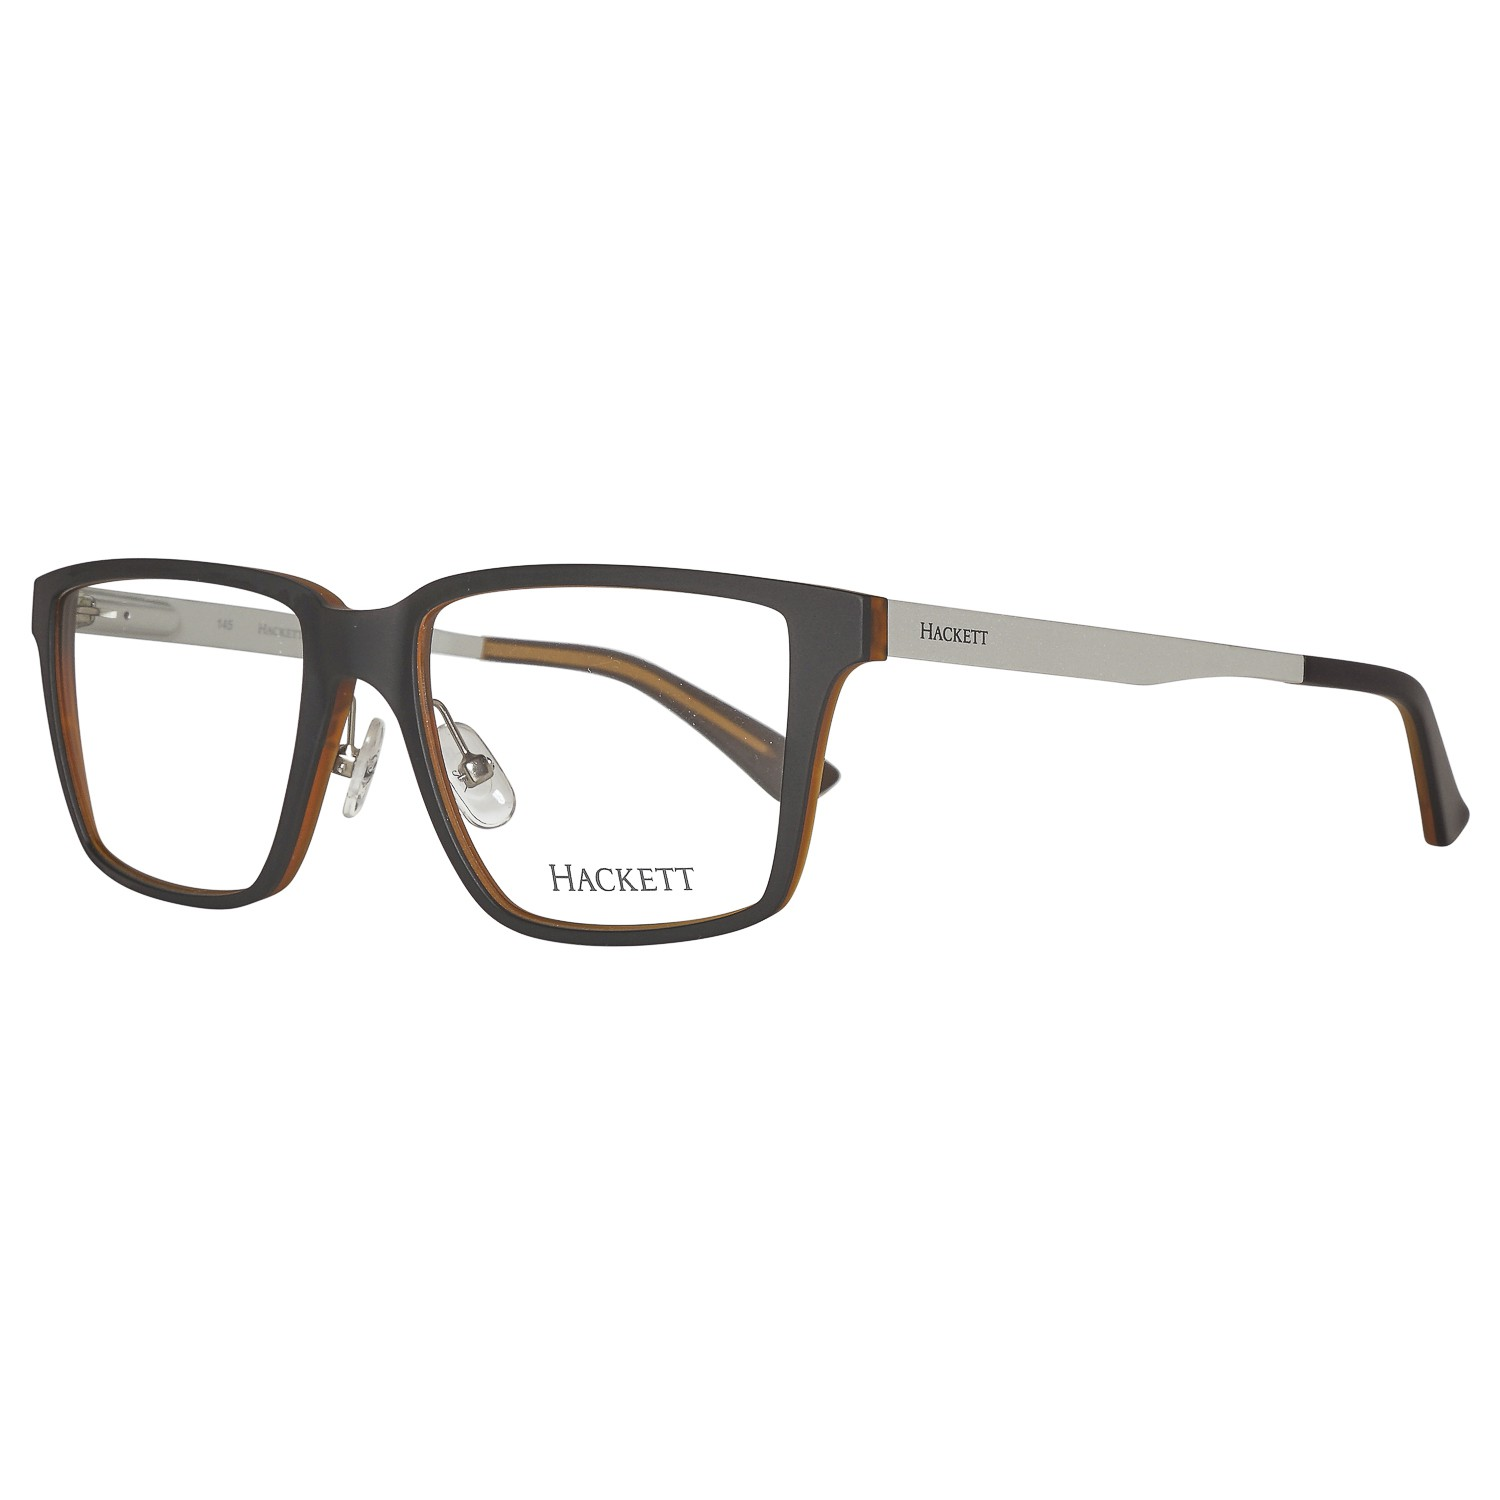 Hackett Optical Frame HEK1154 077 Black